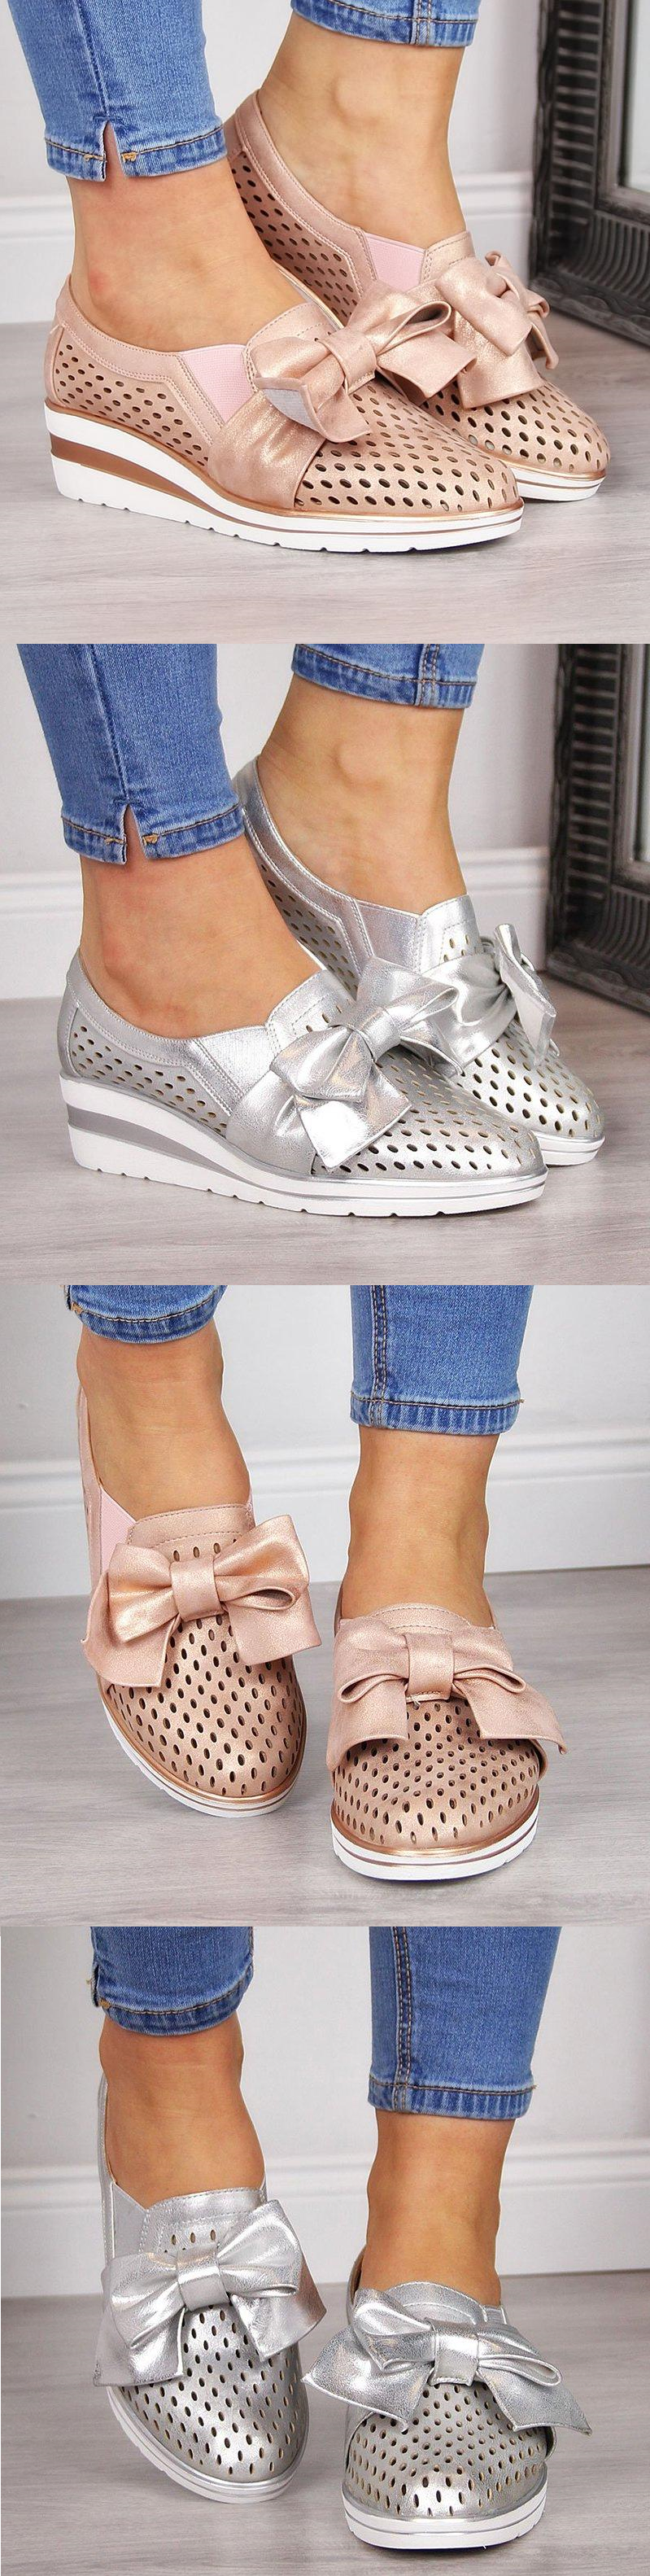 new collection fast delivery classic fit Summer bowknot sneakers in 2019 | my pinterest closet ...